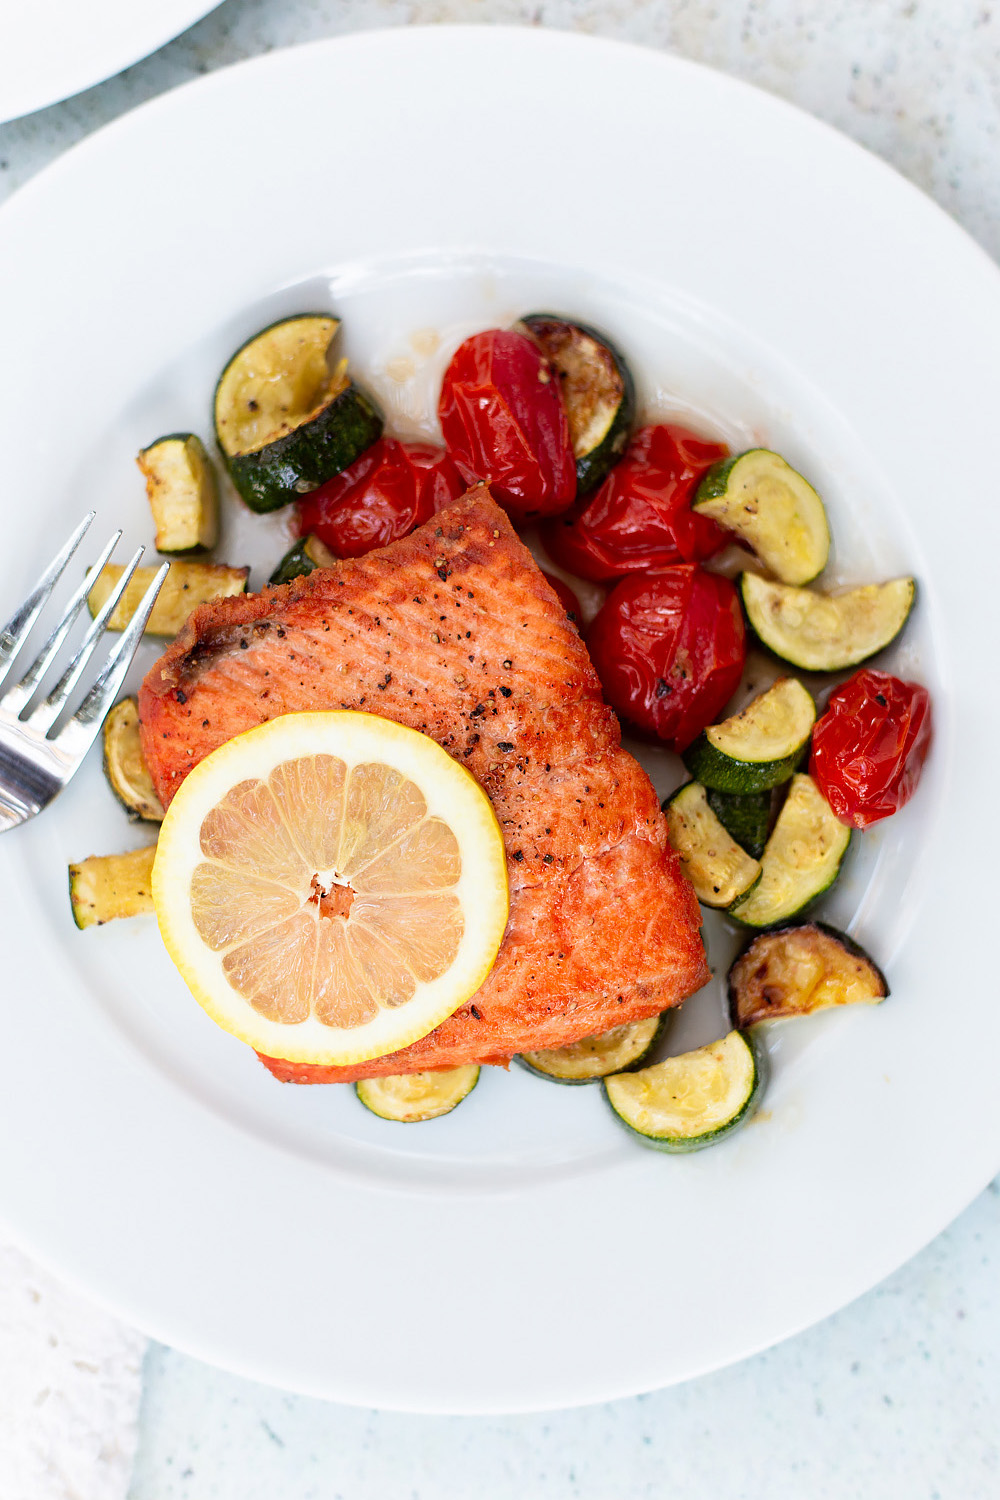 salmon with roasted veggies and a lemon slice